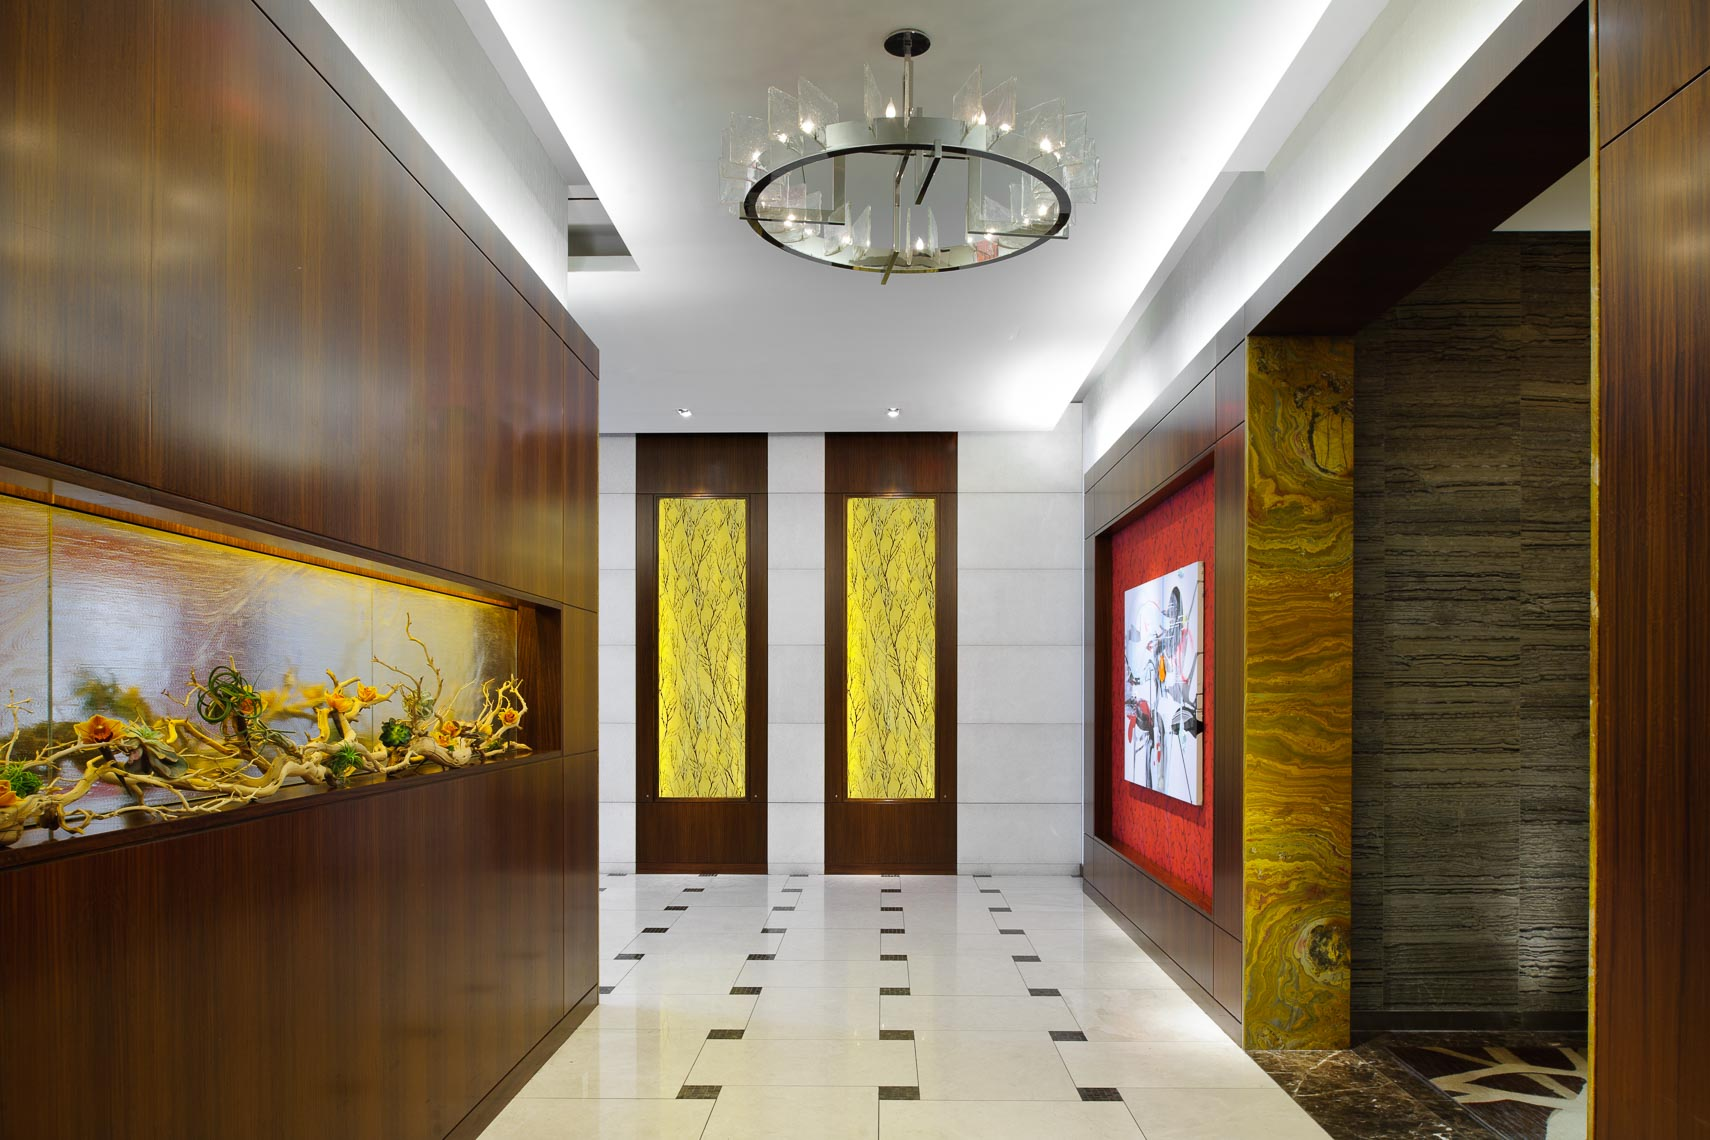 NYC Hotel Interior Design